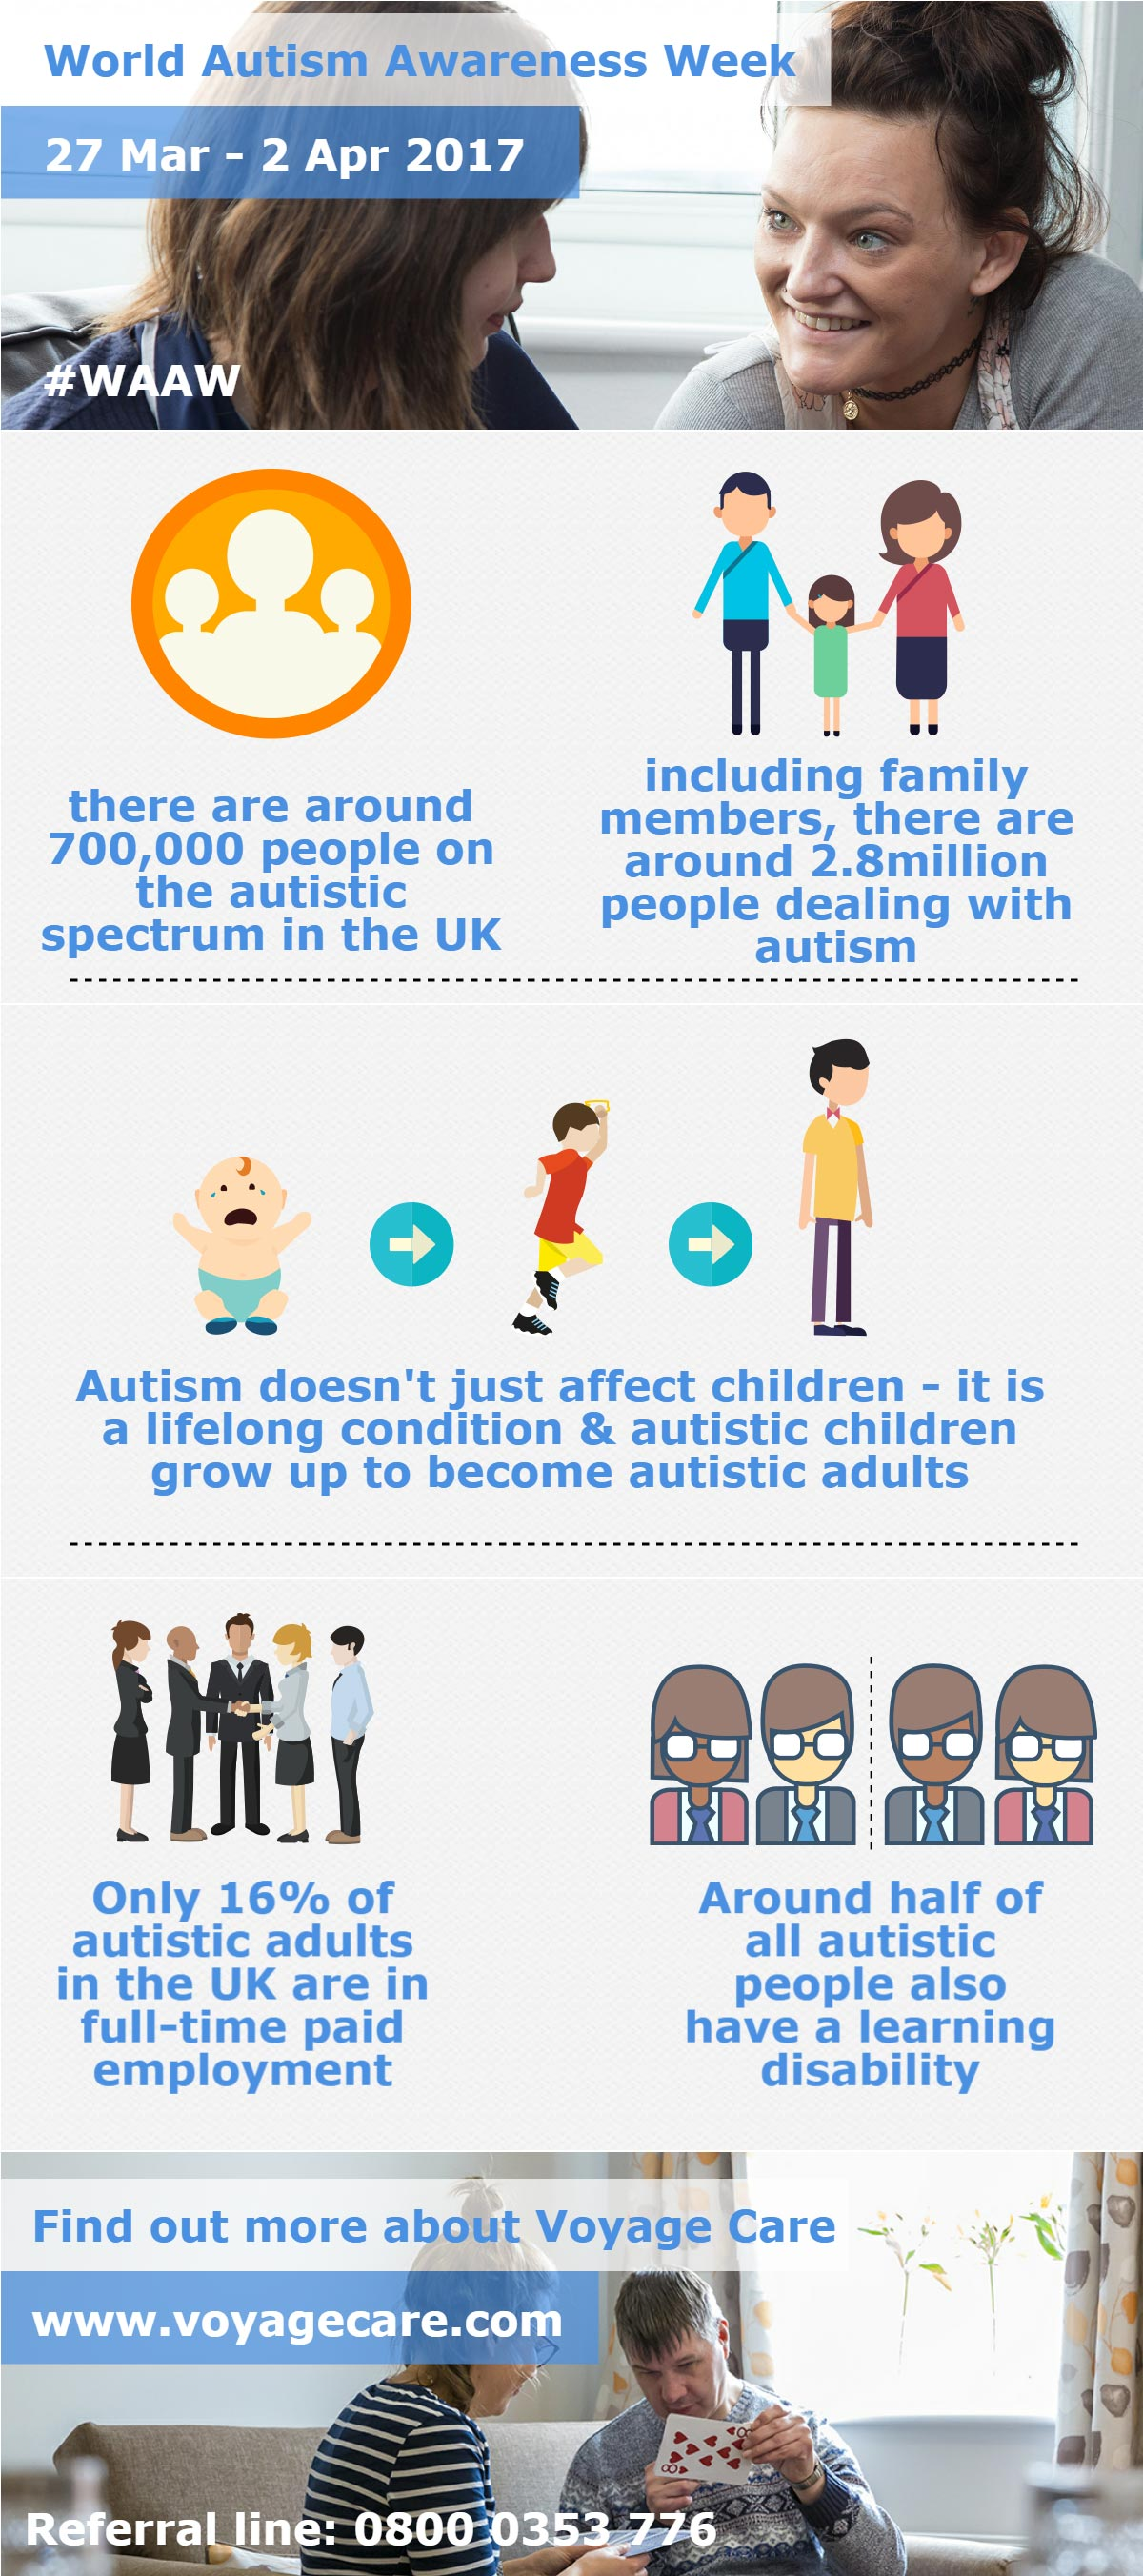 World Autism Awareness Week 2017 Infographic Voyage Care